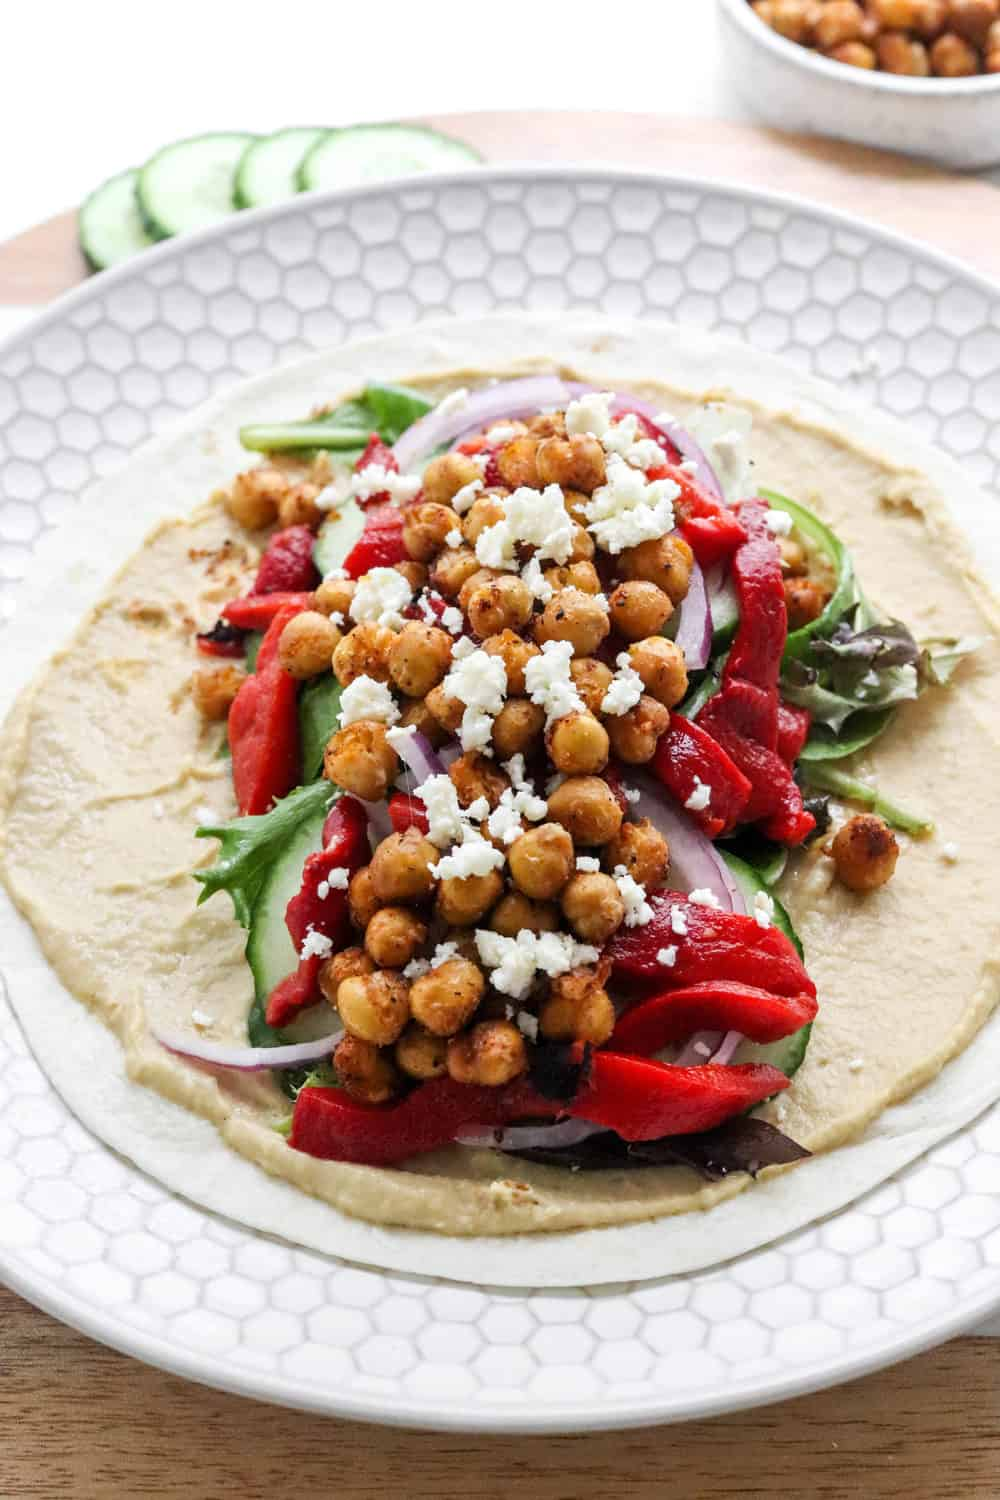 Close up of a pile of chickpeas and red bell peppers, greens and cheese on top of hummus spread over a flour tortilla on a white textured plate with sliced cucumber and a bowl of chickpeas behind it.